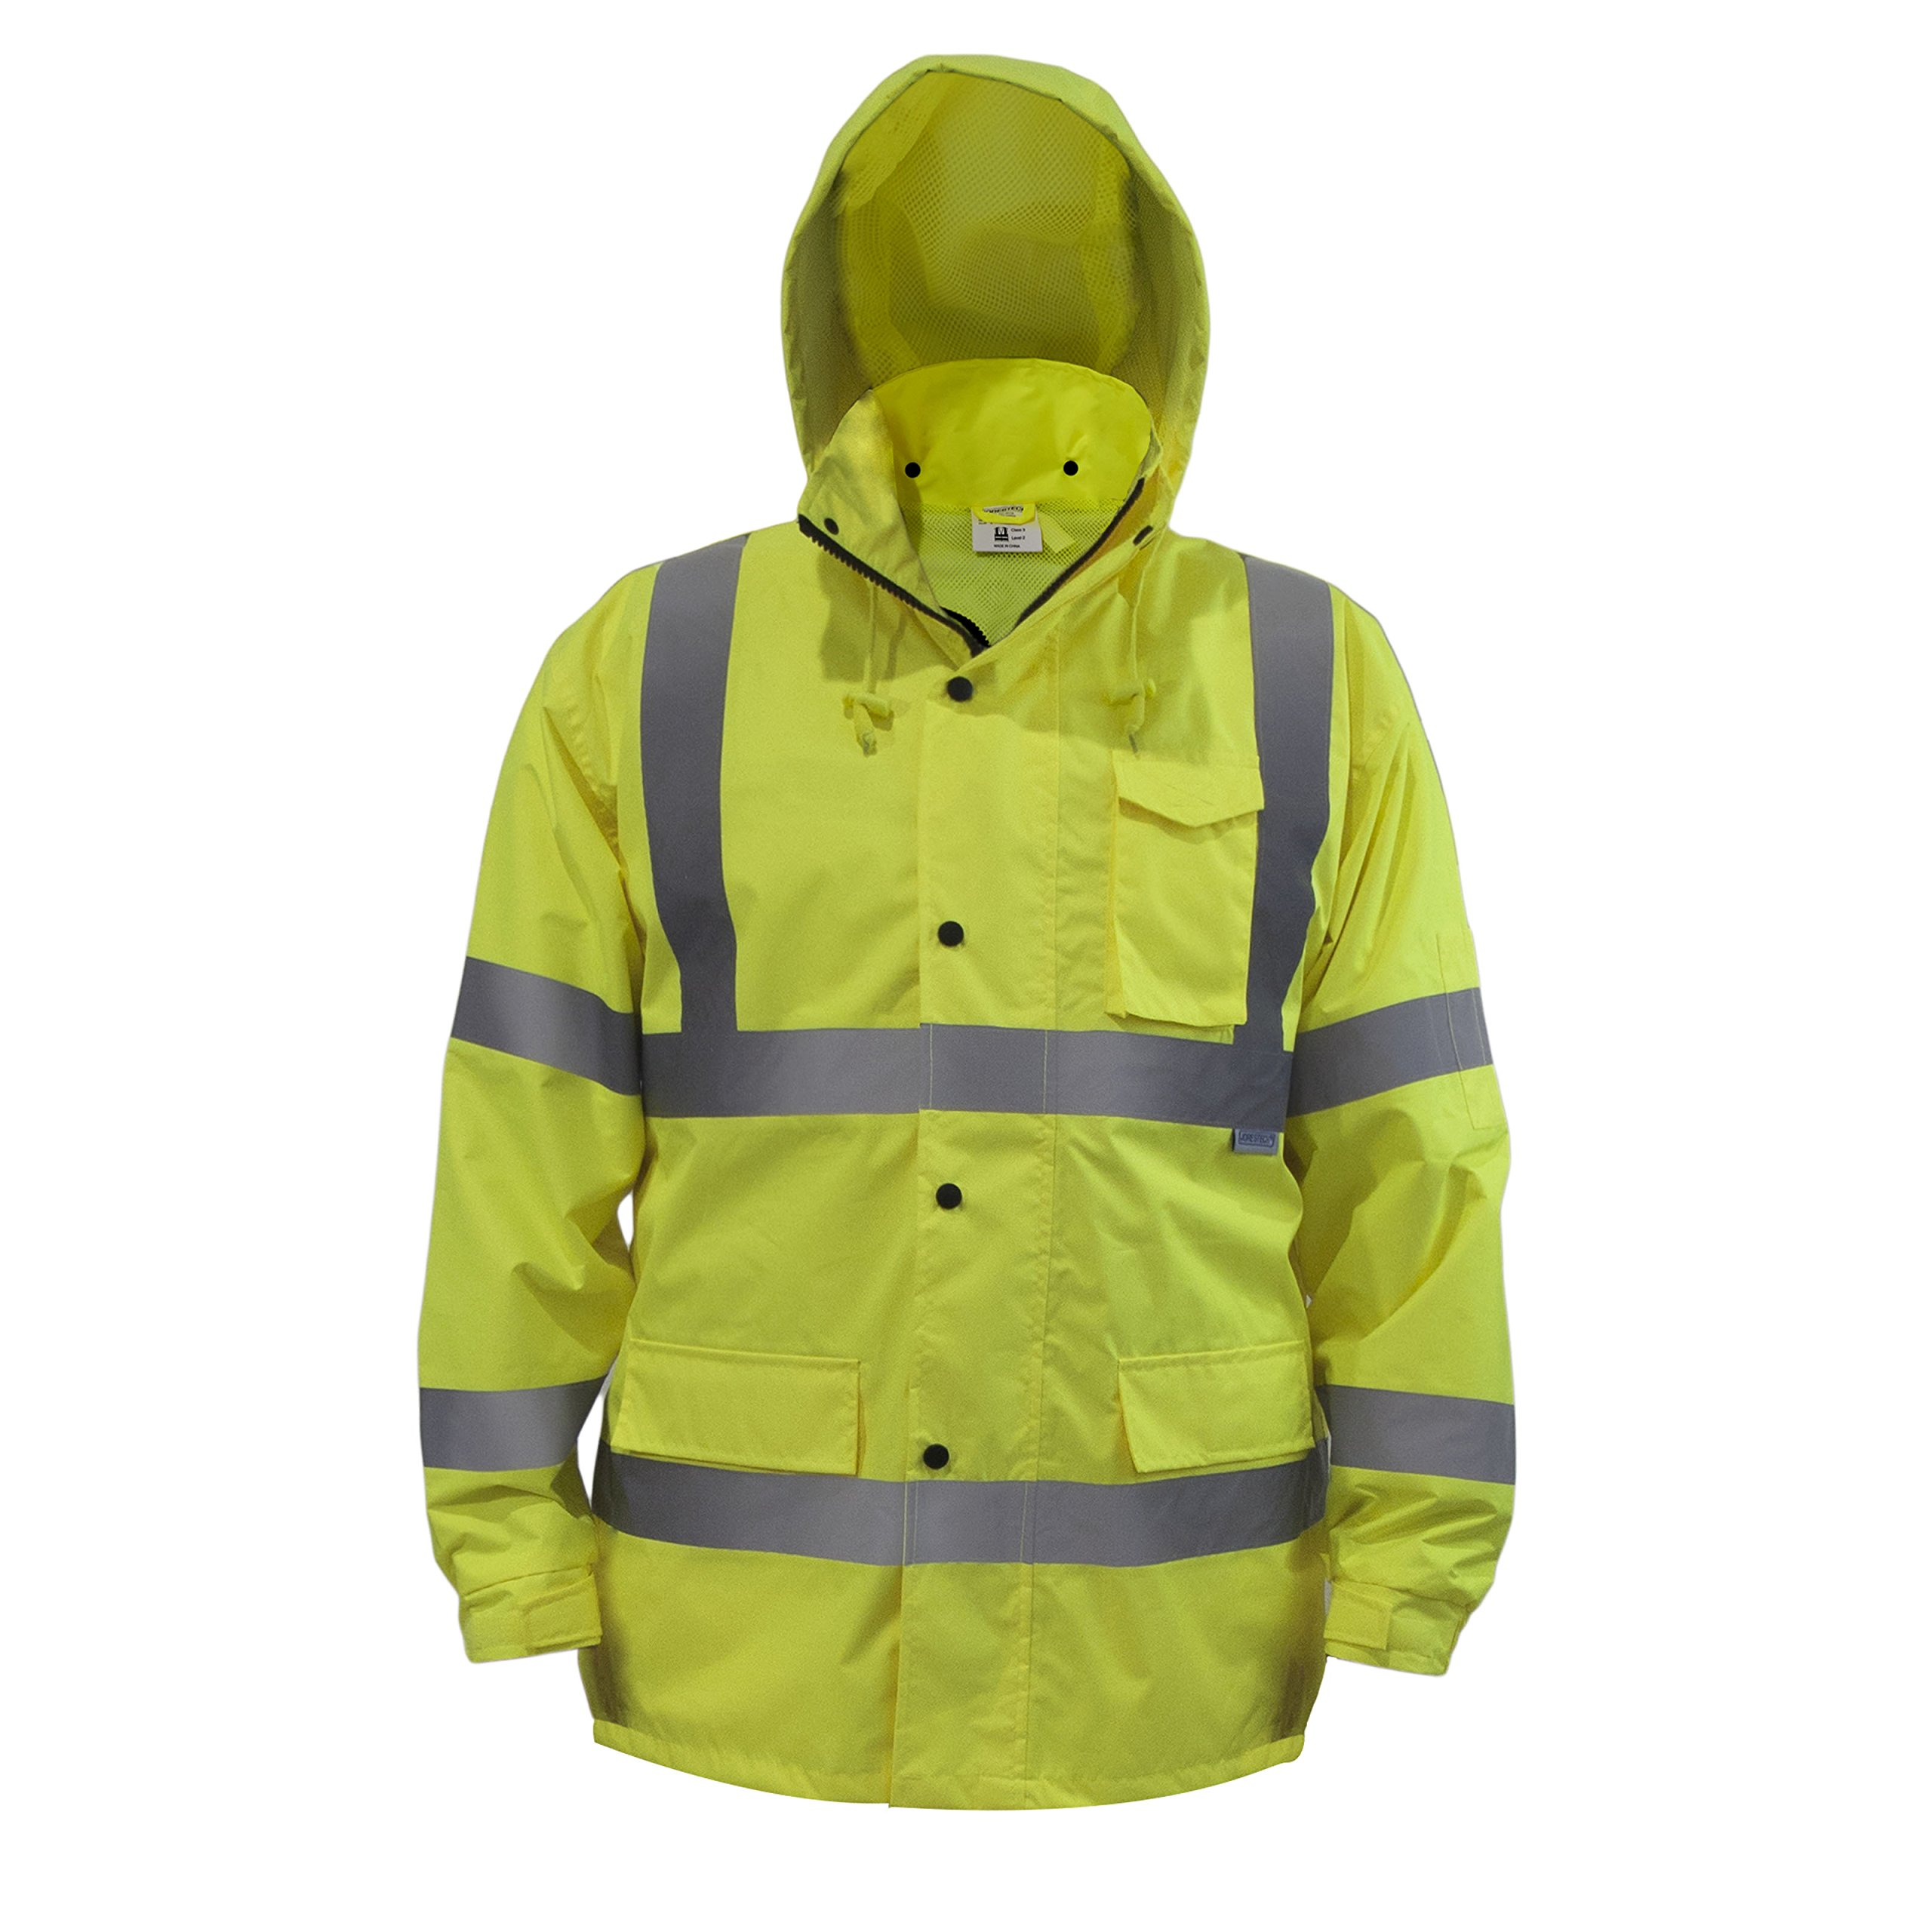 JORESTECH  High Visibility Light Weight Waterproof Rain Jacket ANSI/ISEA 107-2015 Class 3 Level 2 (Large)